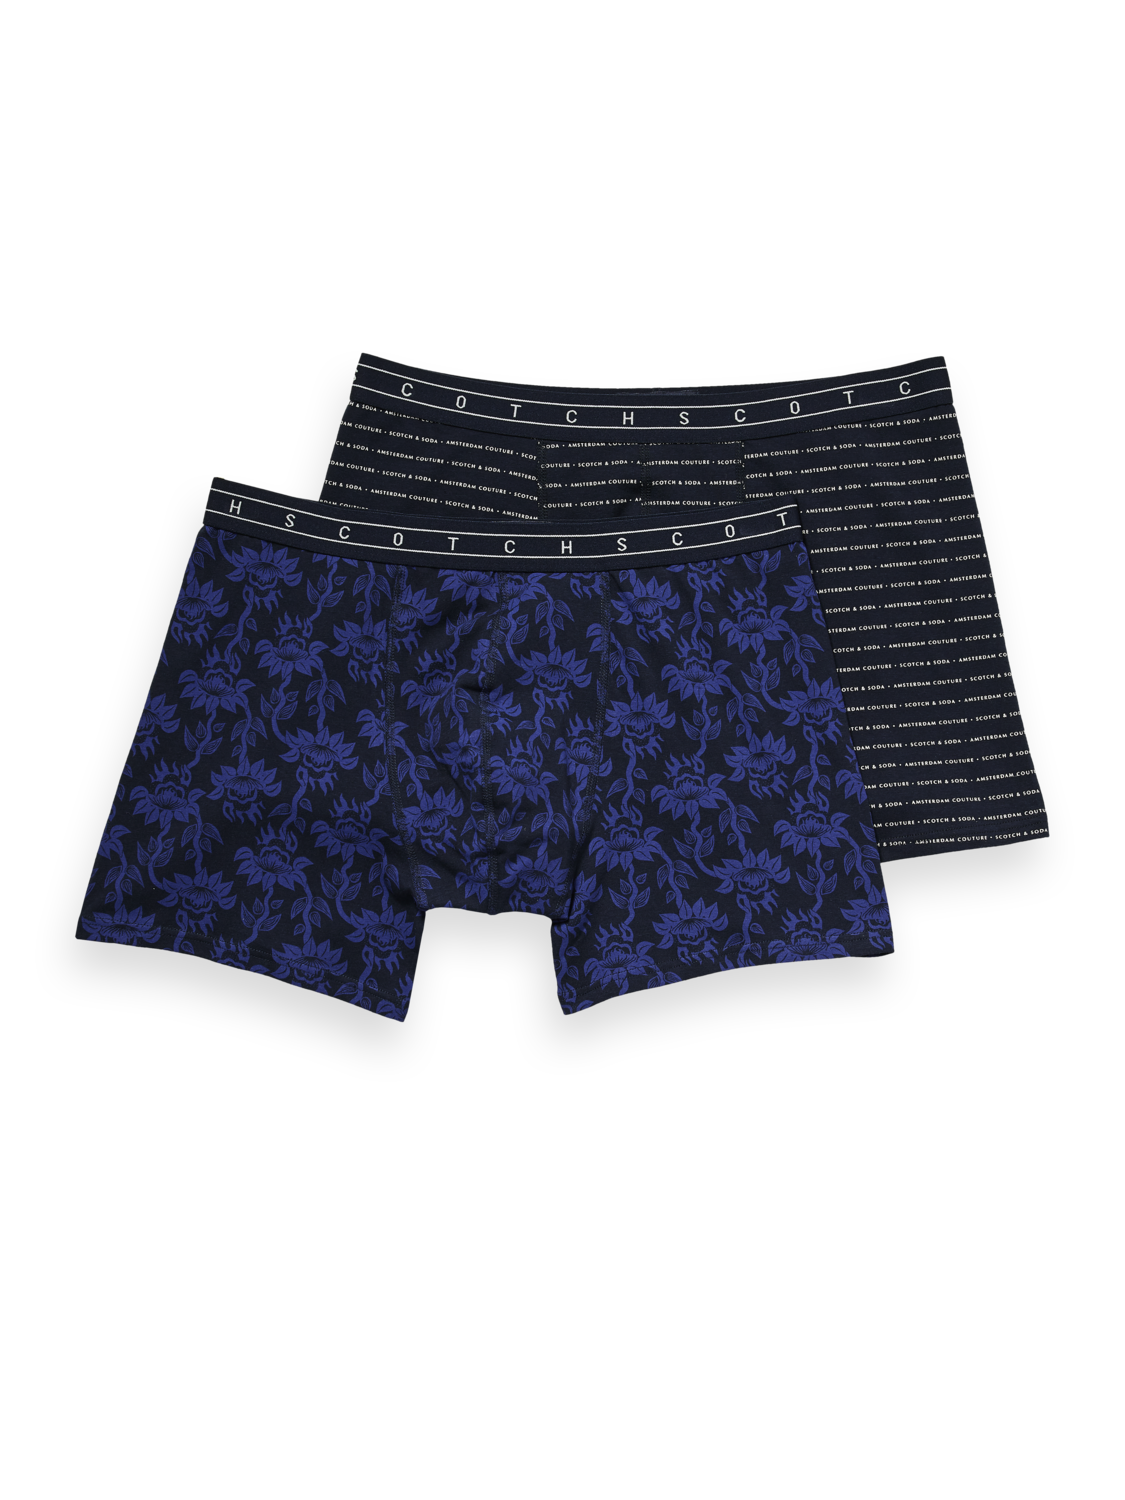 Scotch & Soda Boxershorts 2-er Pack in all-over patterns 157593